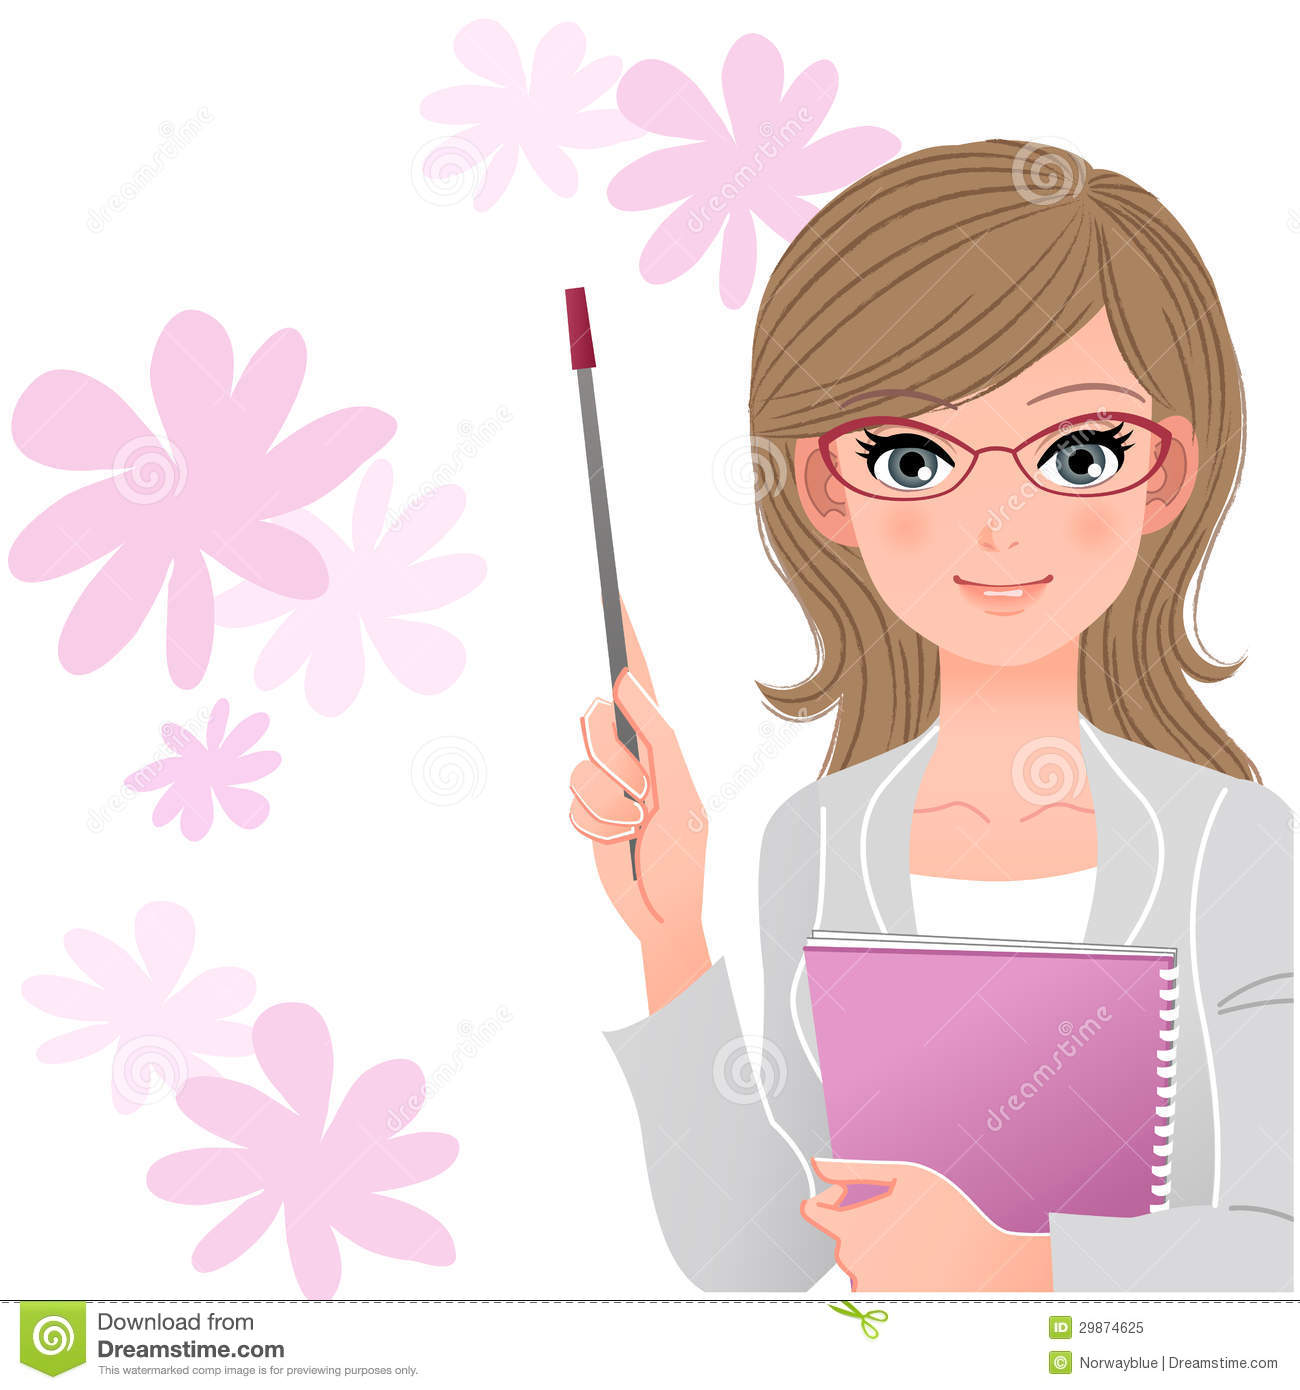 cute lecturer holding pointer stick on flower background free clip art question mark fireworks free clip art question marks no background